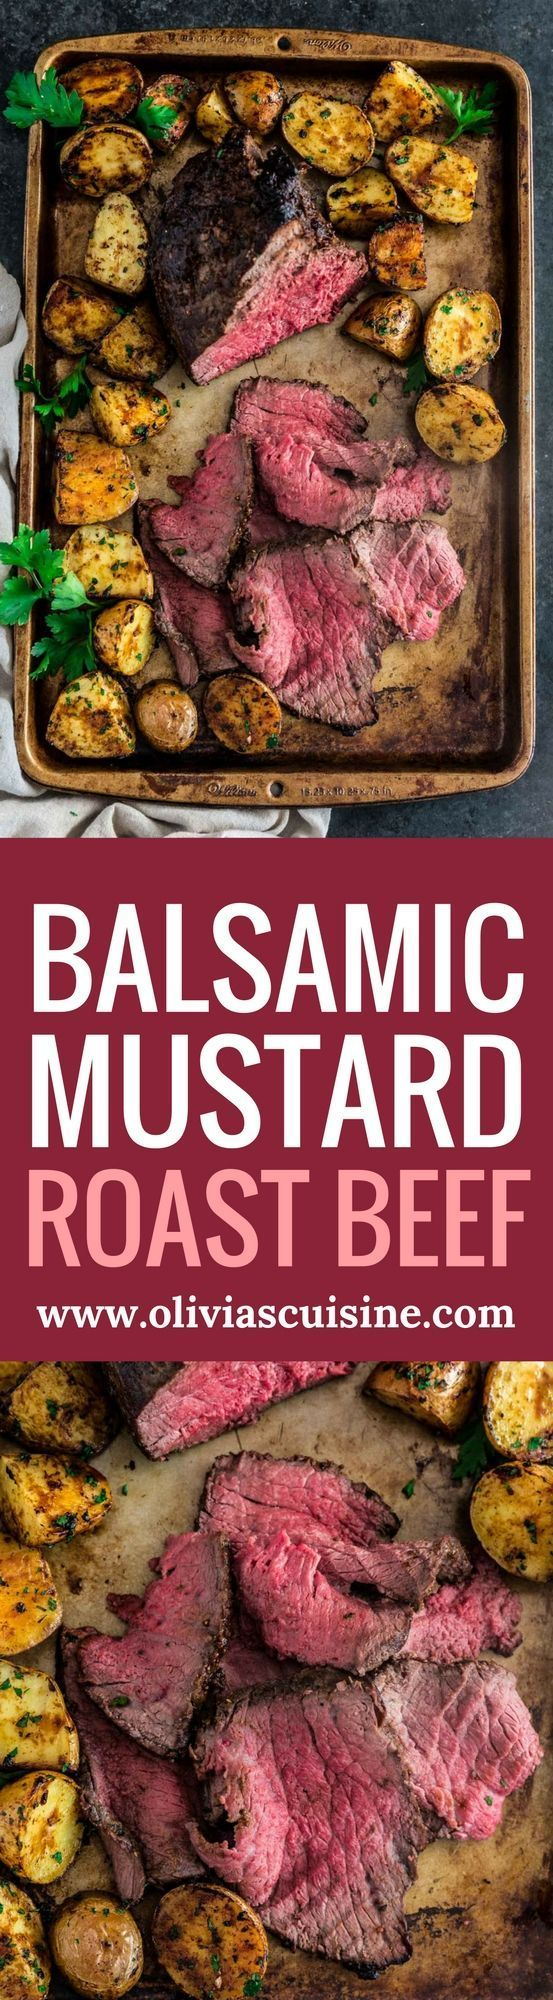 Balsamic Mustard Roast Beef | http://www.oliviascuisine.com | No holiday table is complete without a beautiful centerpiece roast beef. Glazed with balsamic mustard, this version is both simple and impressive. It will quickly become your go-to recipe for a